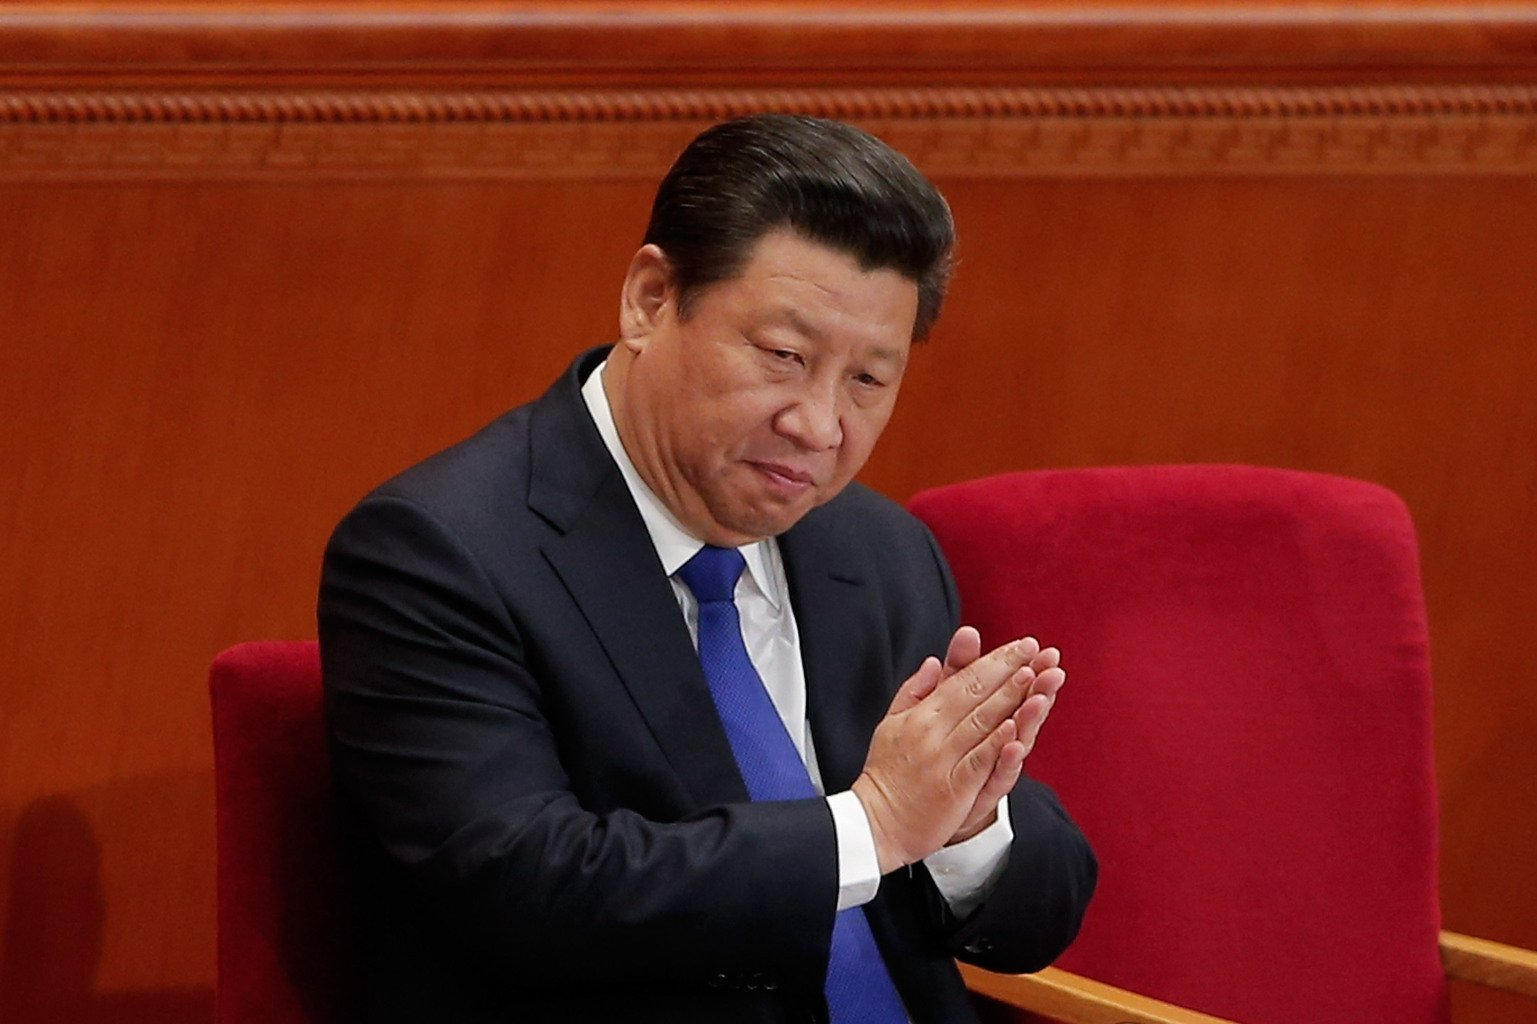 La China actual. Xi Jinping, el gran tirano